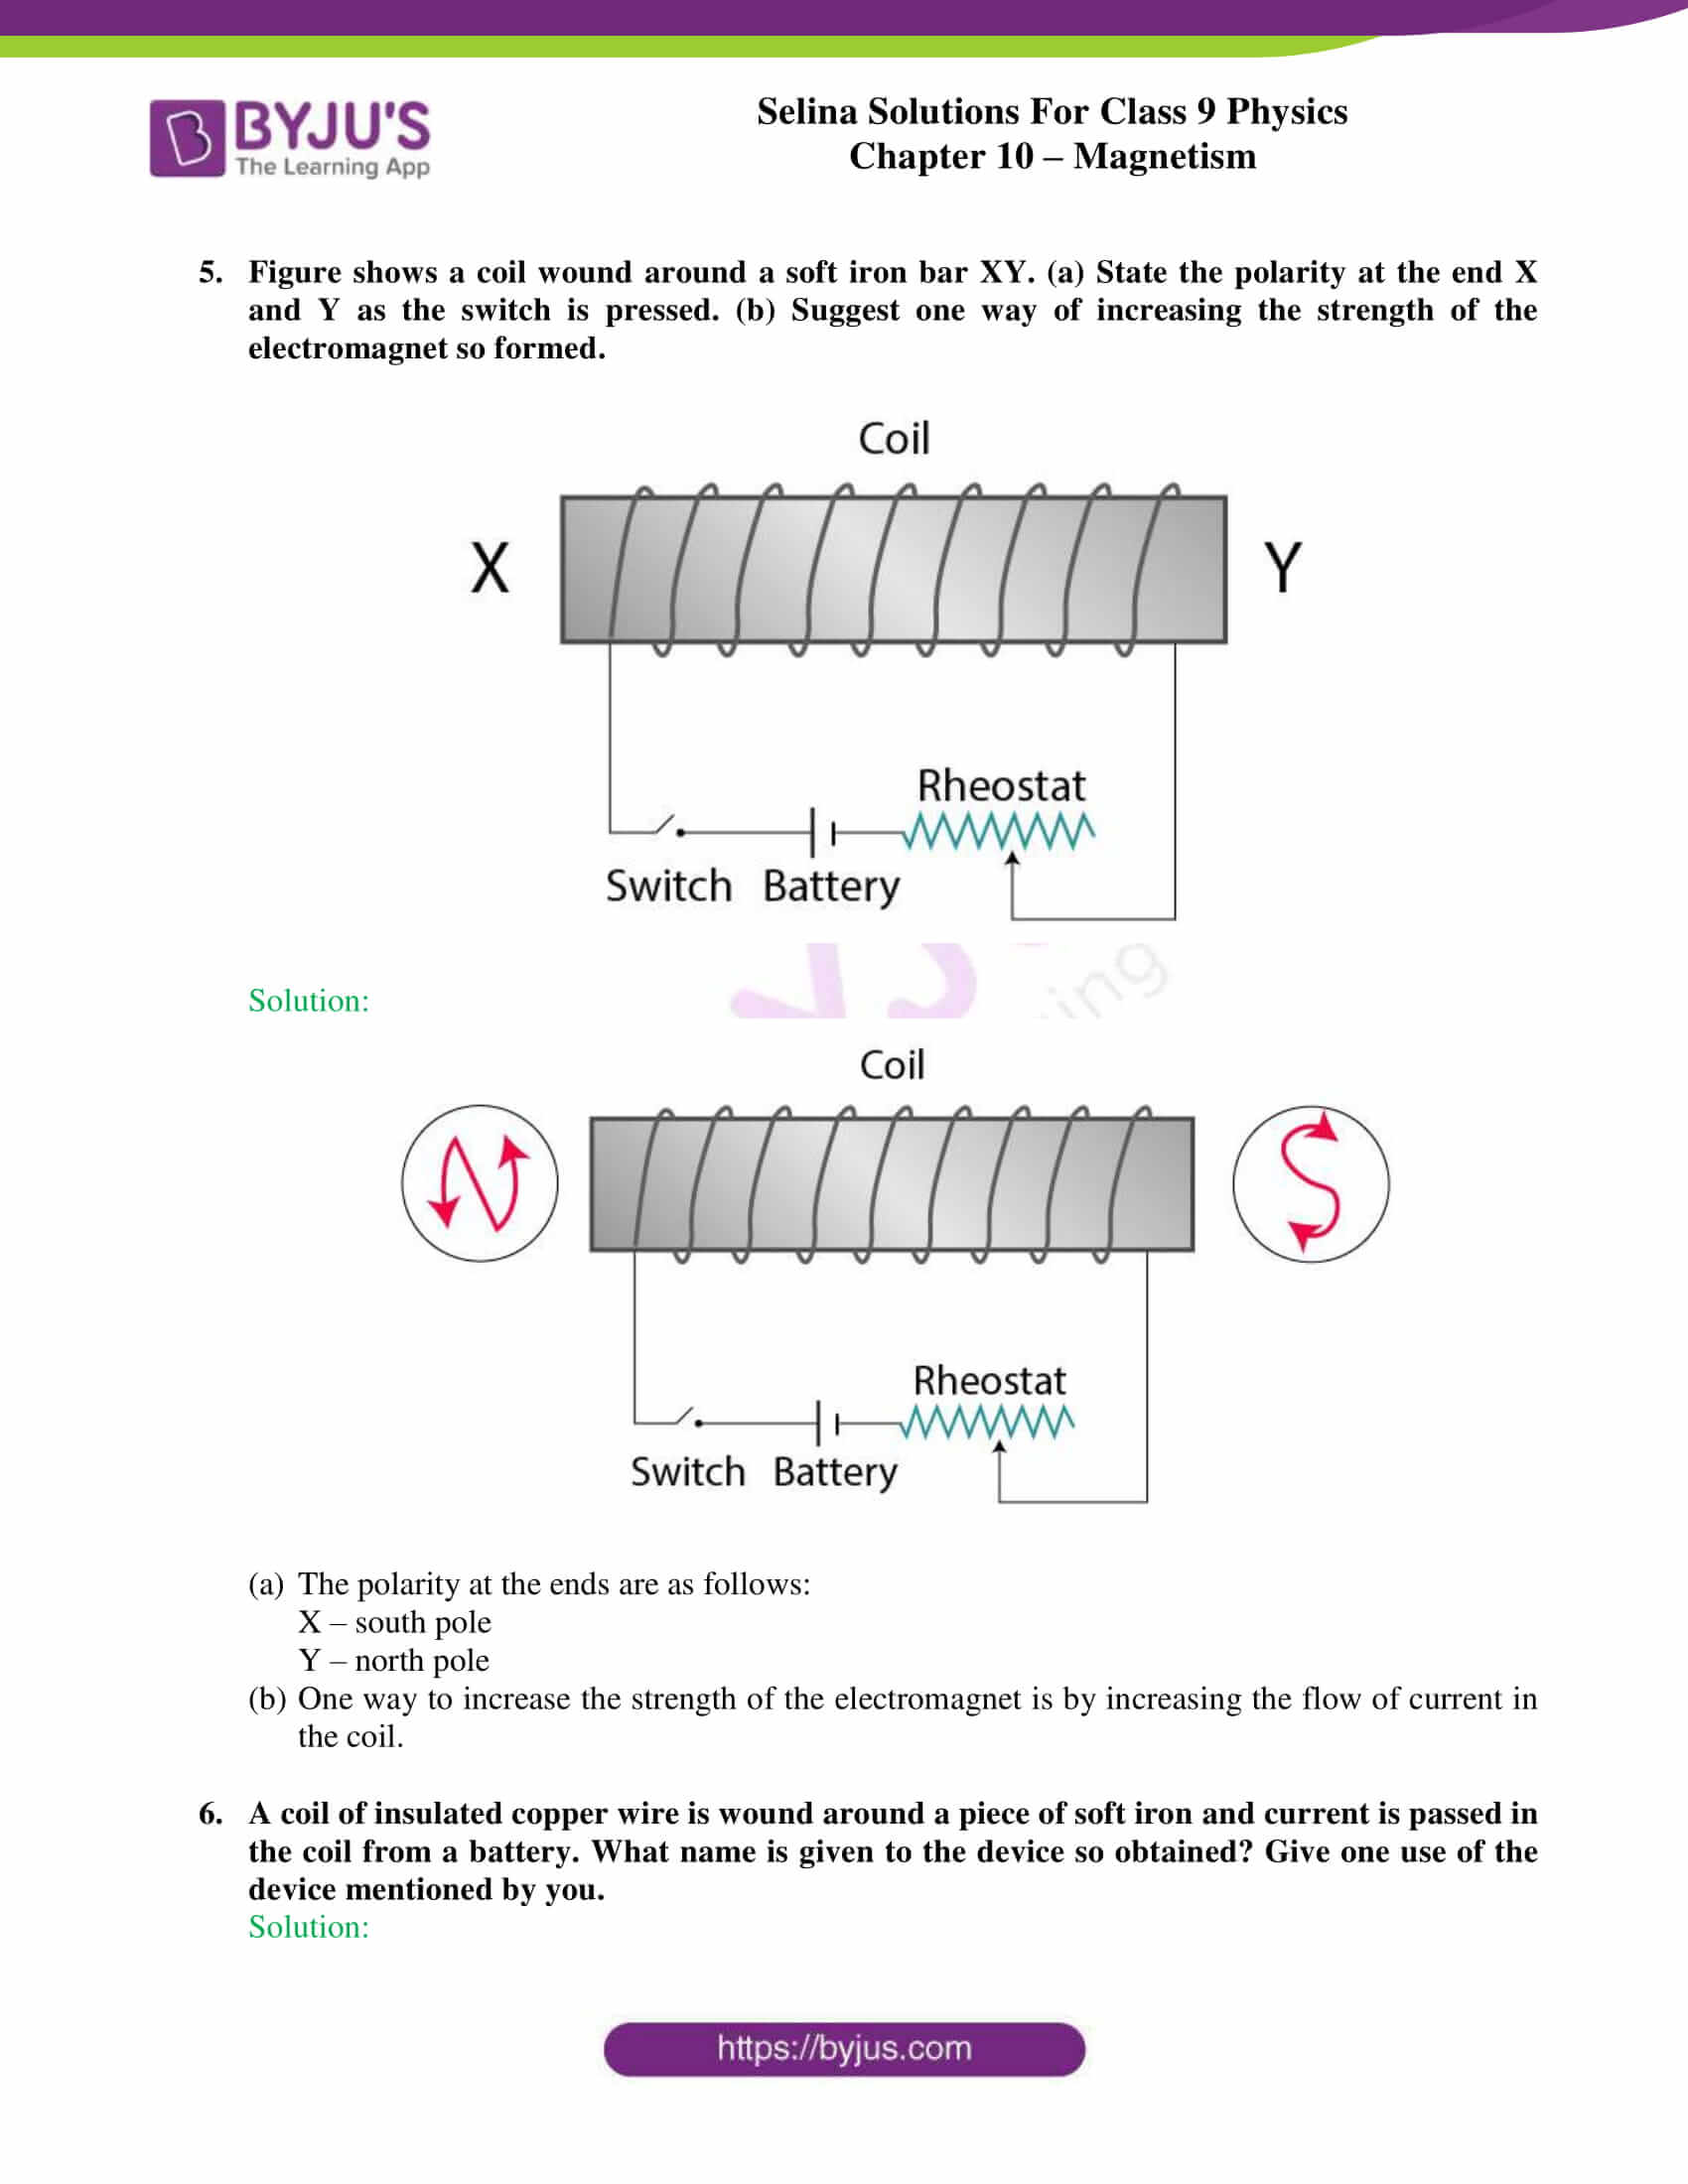 selina solutions class 9 physics chapter 10 Magnetism part 12